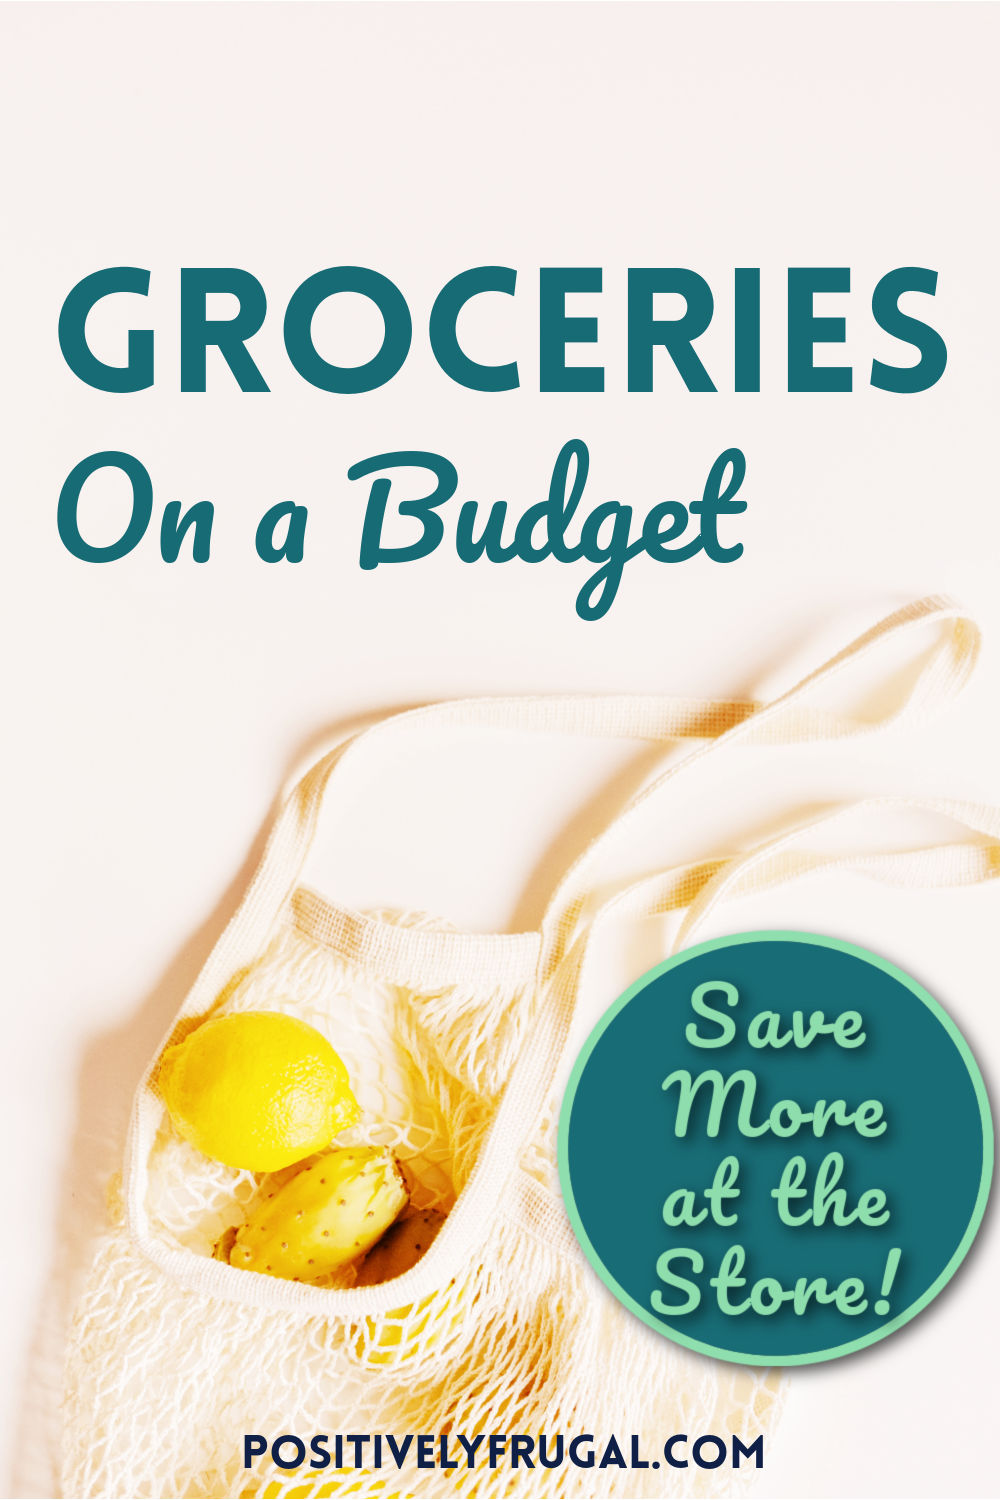 Groceries on a Budget Save More at the Store by PositivelyFrugal.com